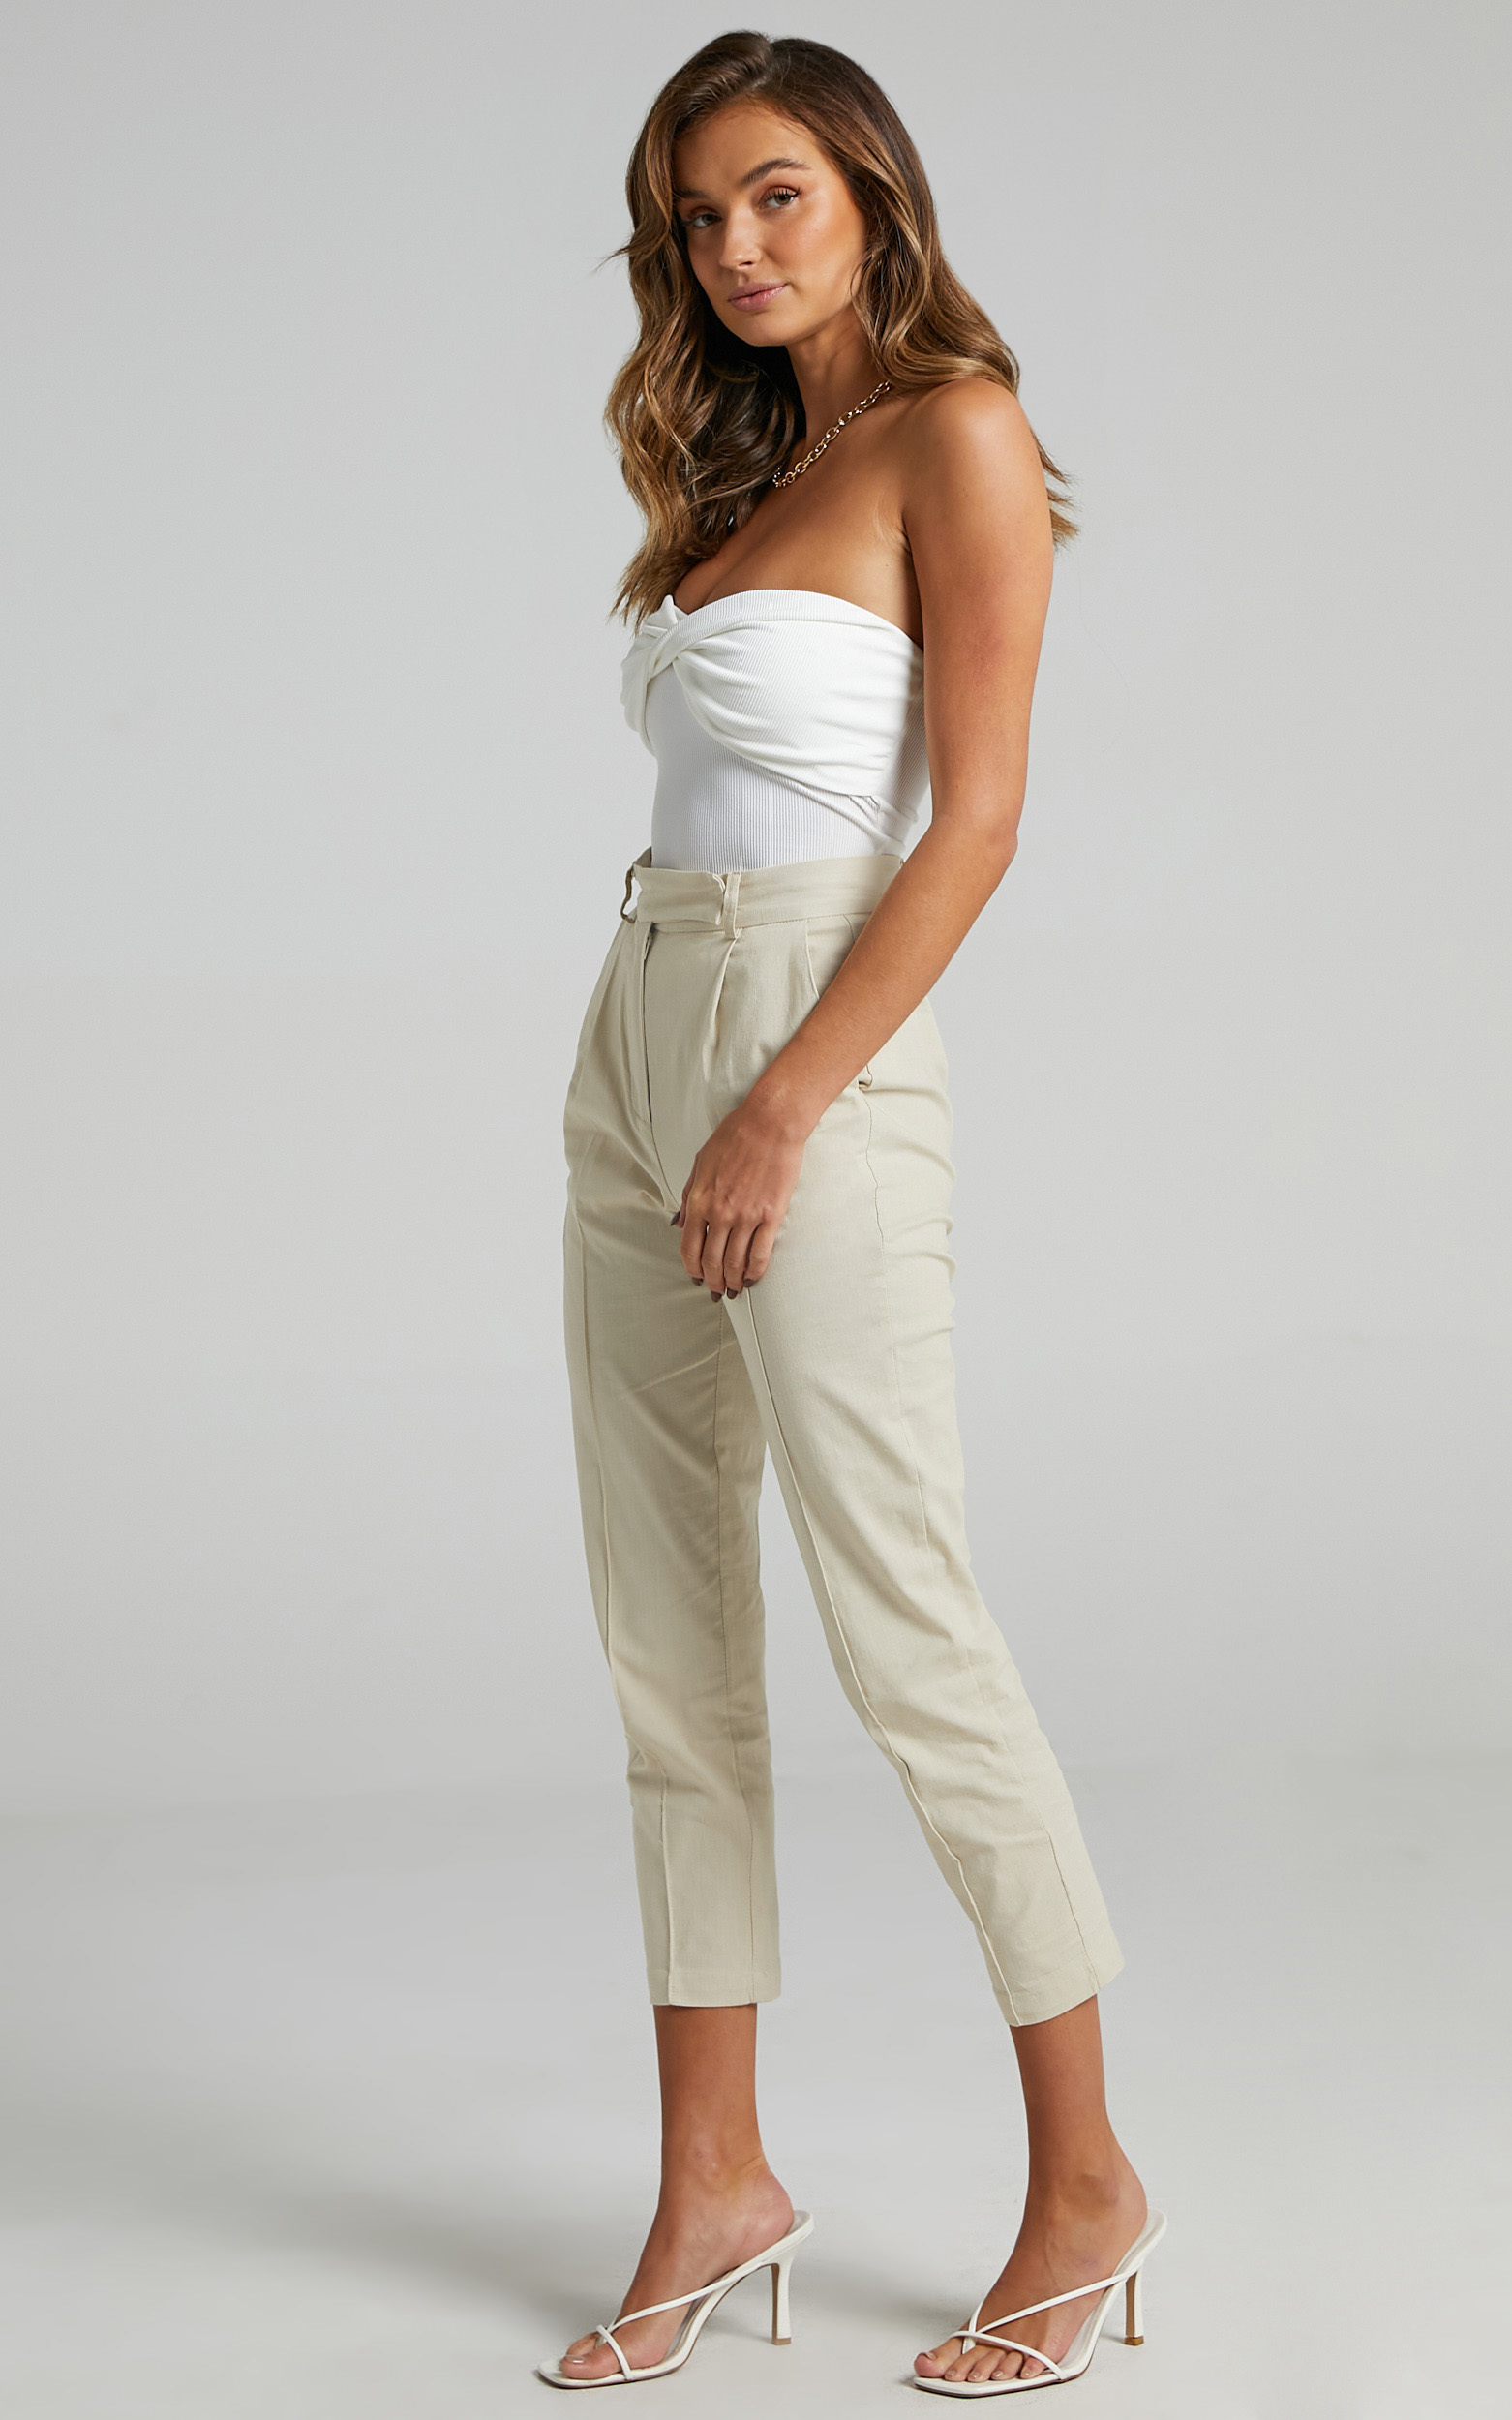 Runaway The Label - Calix Pants in Sand - L, BRN1, hi-res image number null